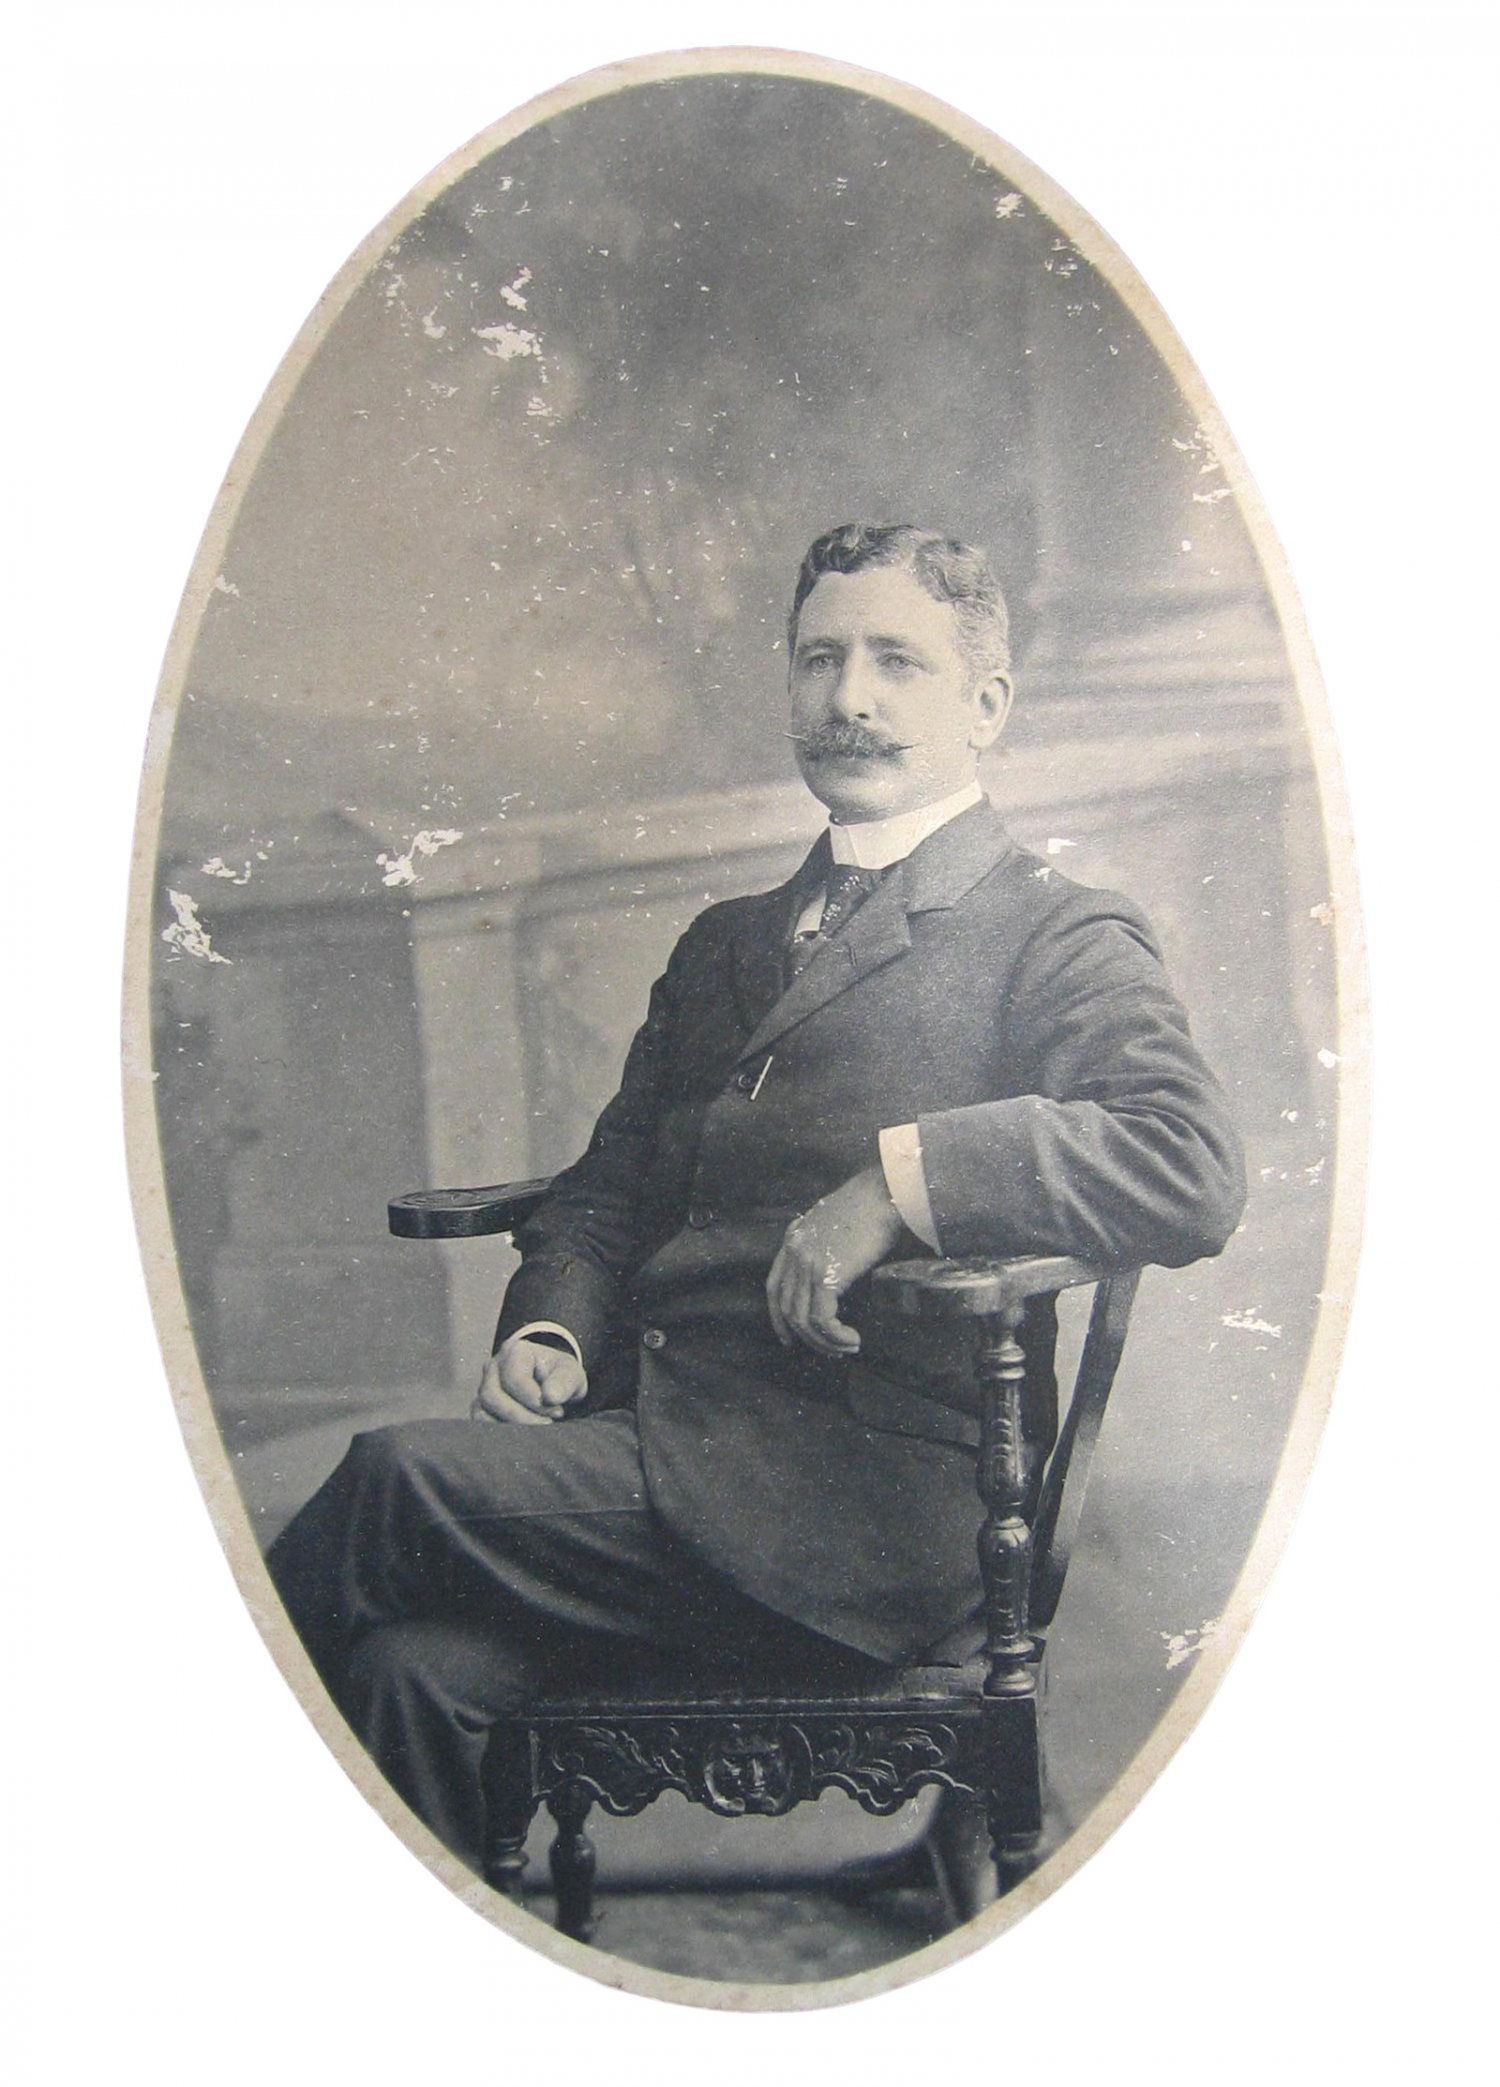 Cameo portrait of man seated in wooden armed chair.